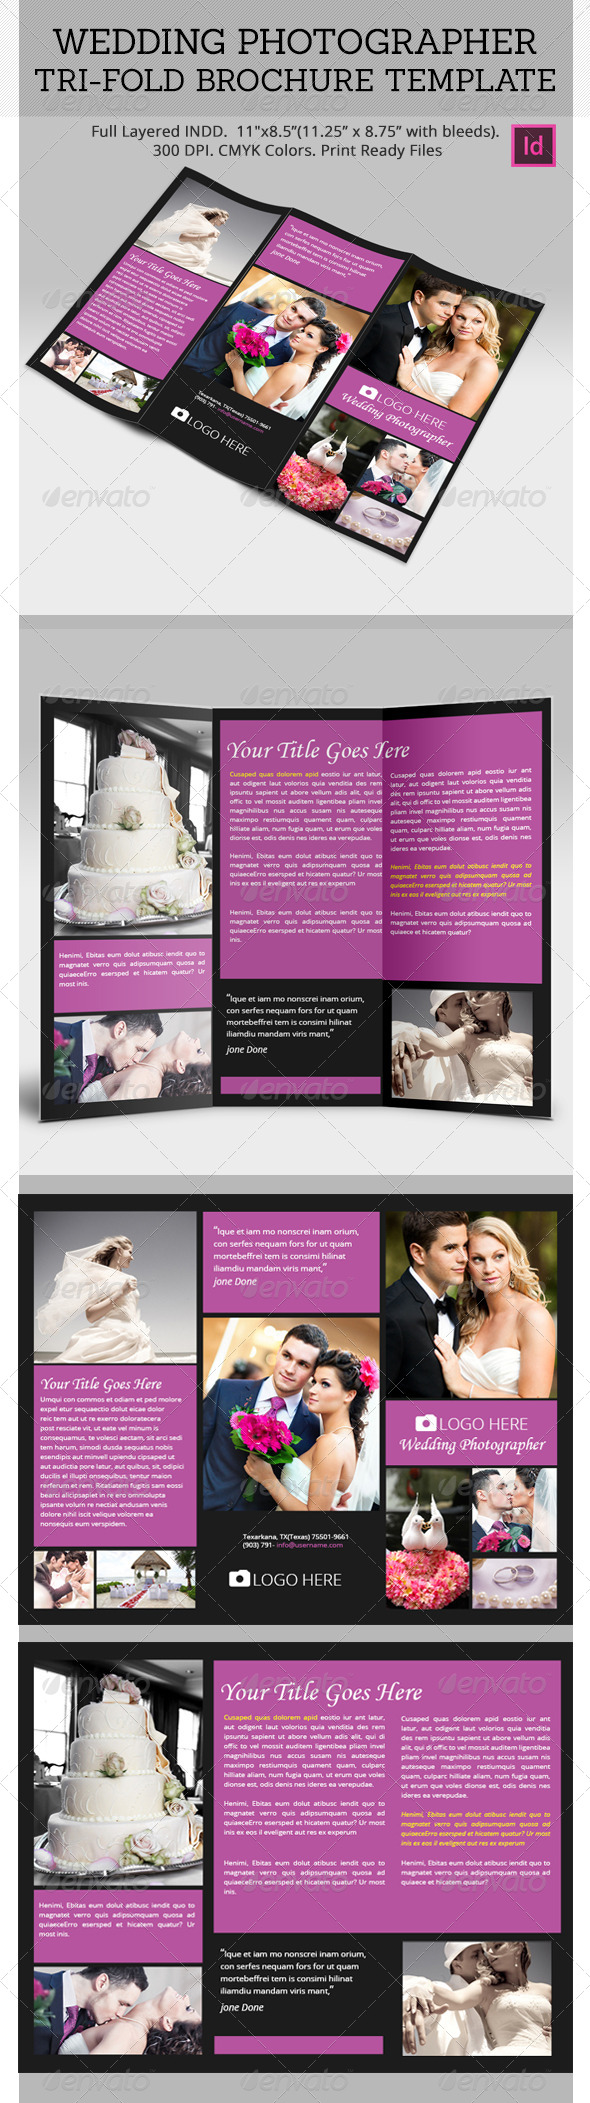 Weddign Photo Grapher Tri Fold Brochure Templates - Portfolio Brochures